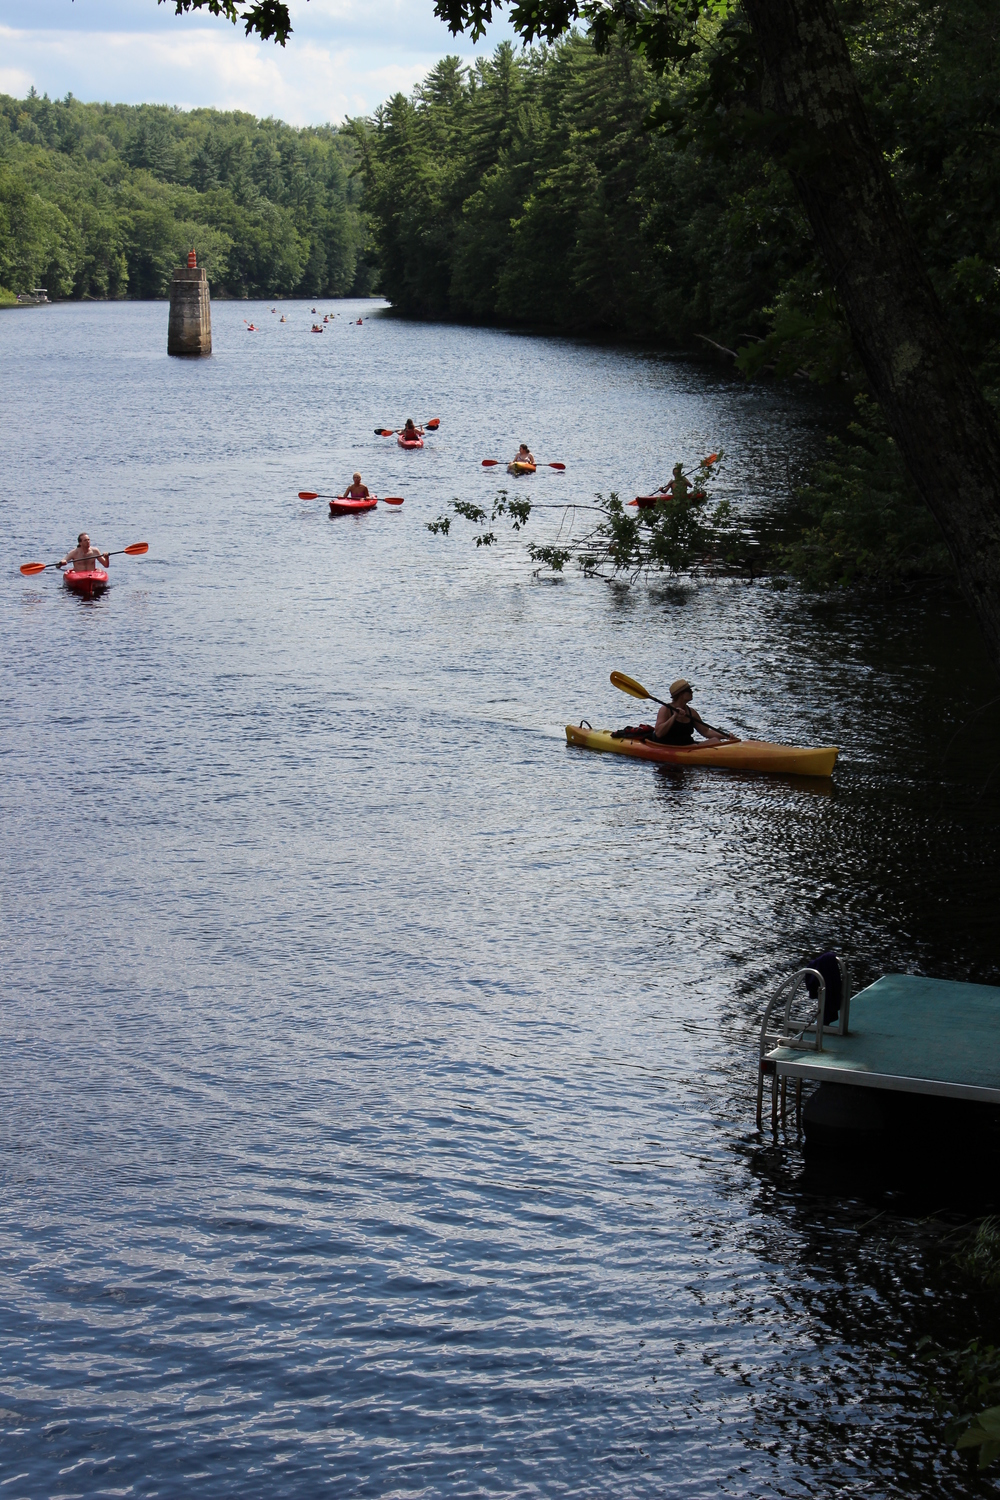 Kayakers on the Contoocook River, Concord, NH